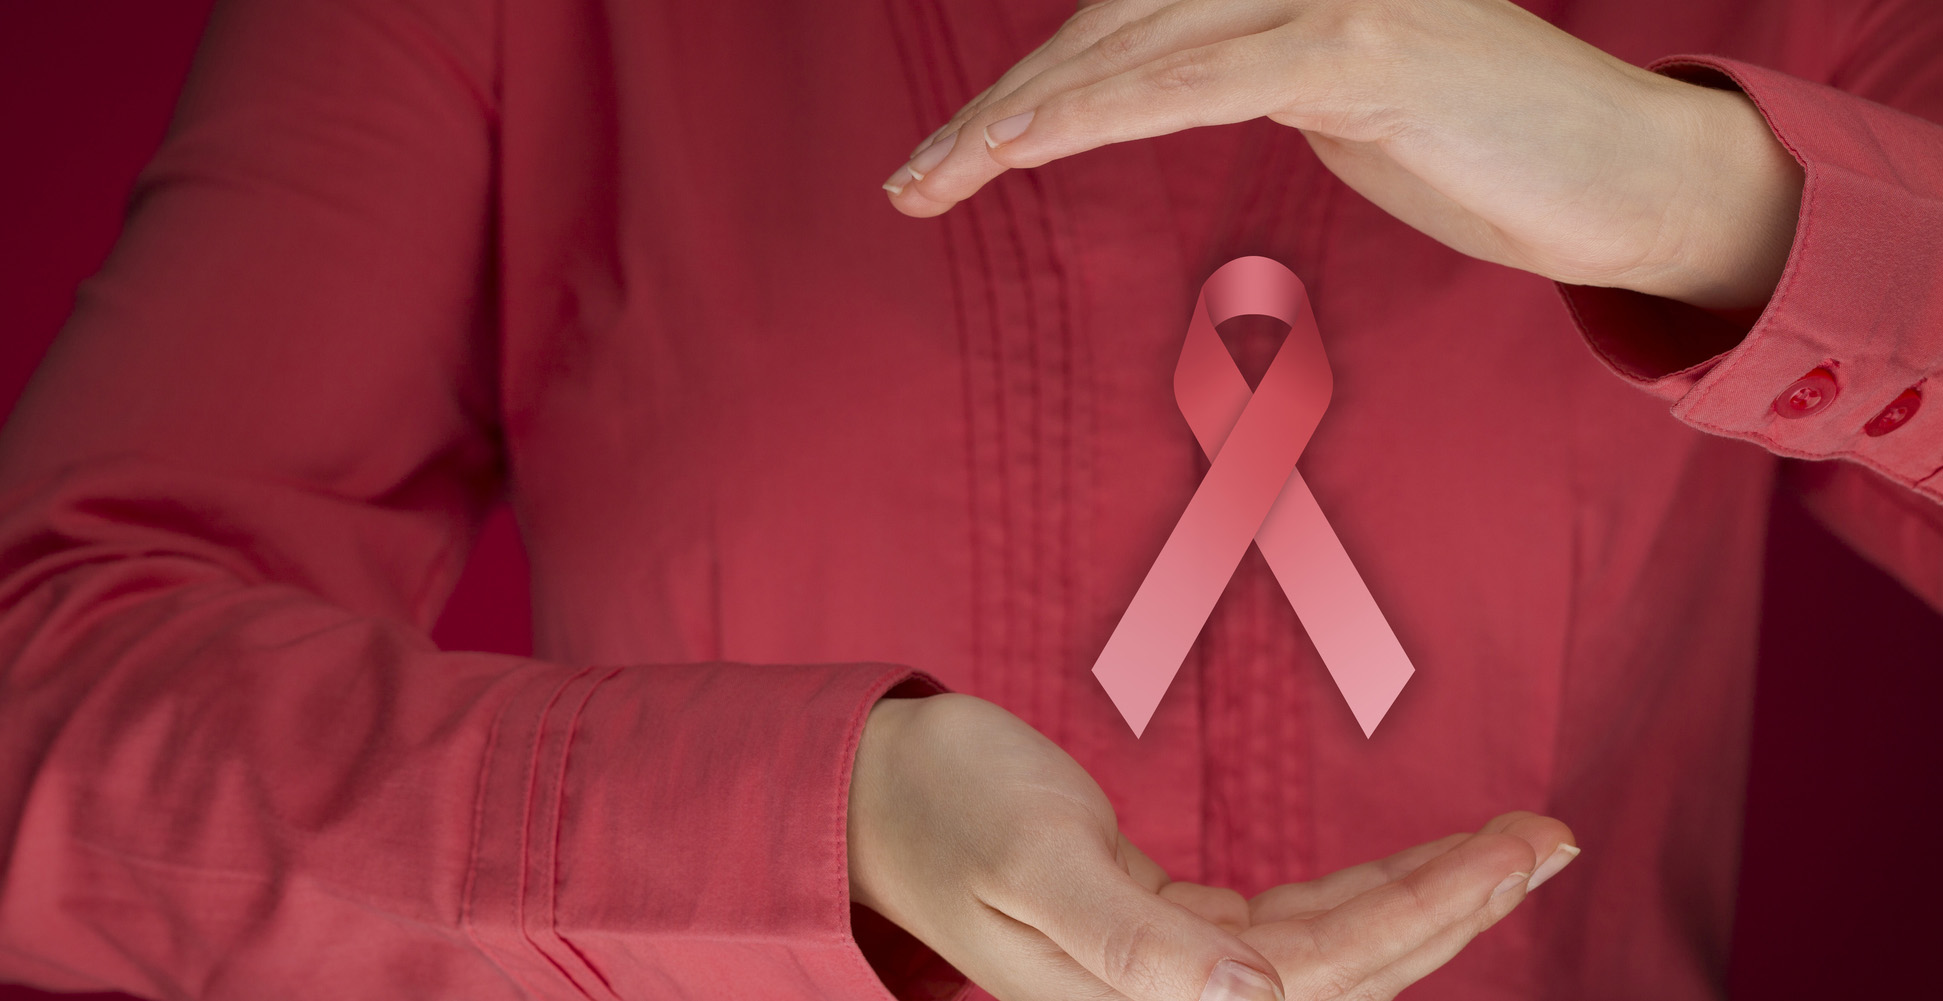 Woman with breast cancer prevention ribbon